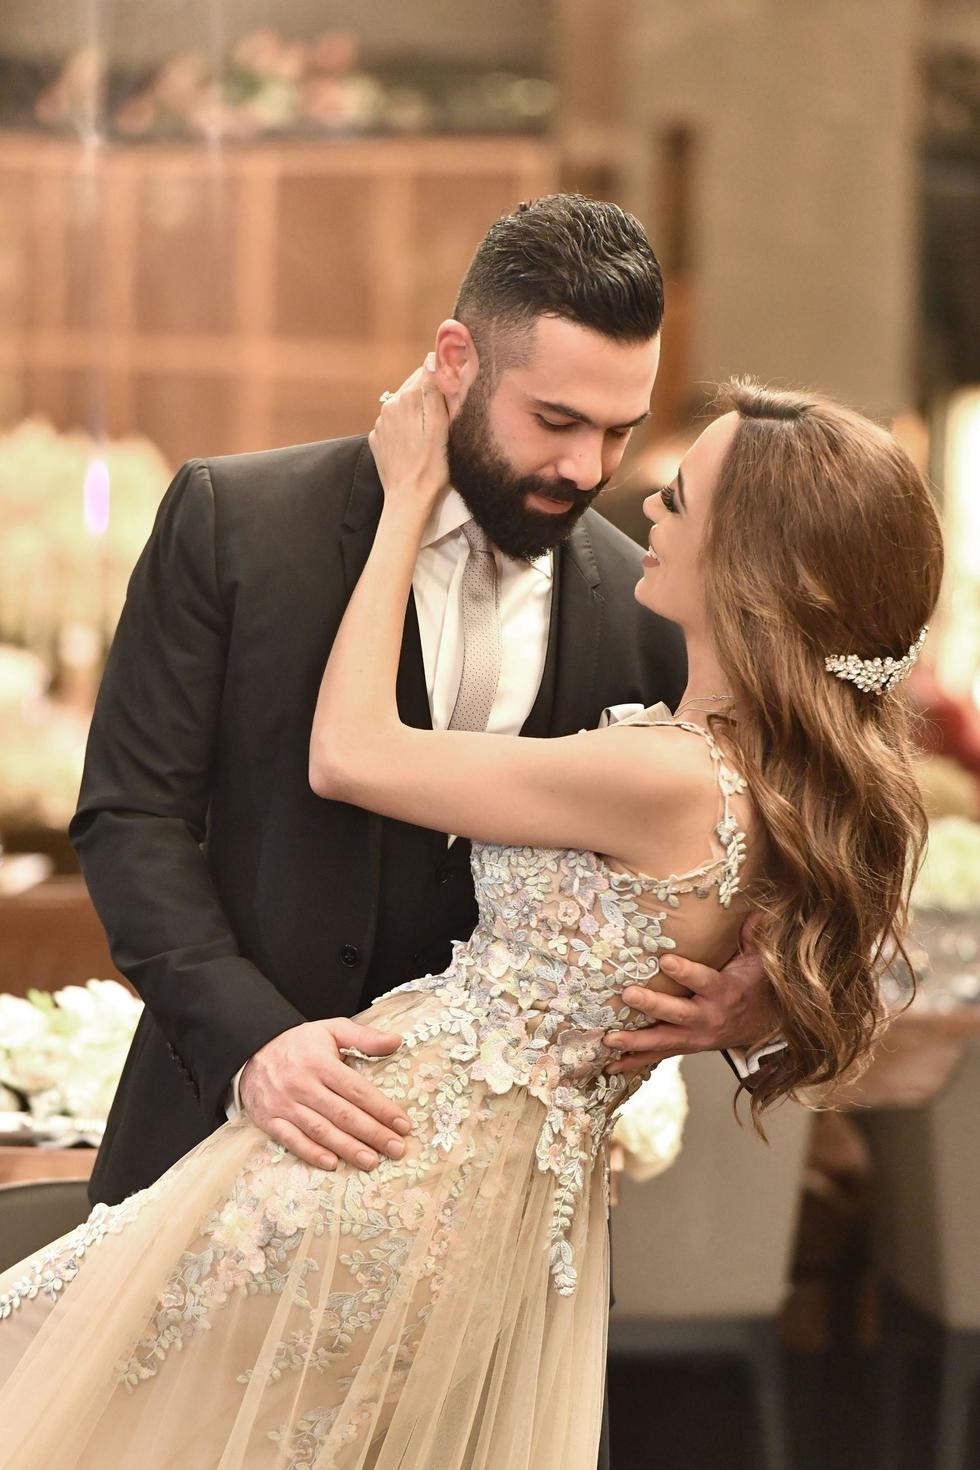 30-year-old Zeynab and her man, marketing manager, Mohamad Kanso celebrated their engagement and Katb el-Kitab in the groom's home country, Lebanon, last month.